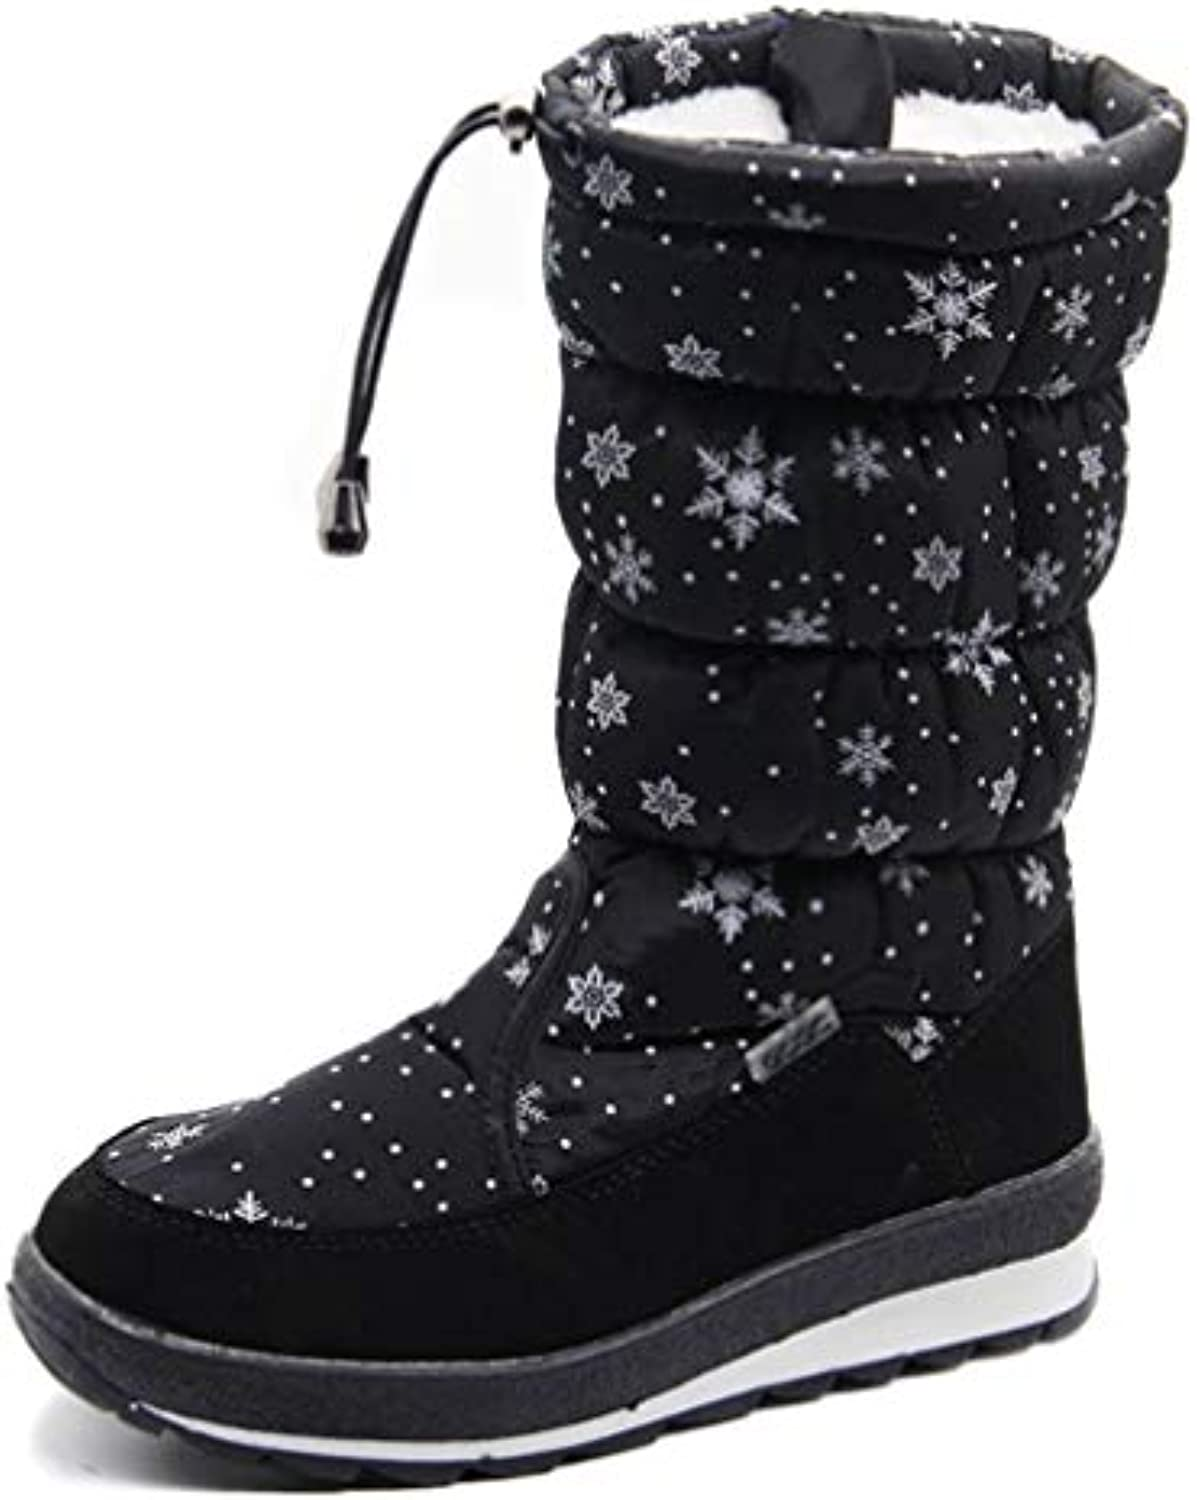 T-JULY Russian Winter Boots Women's Winter shoes Female Comfortable Snow Boots